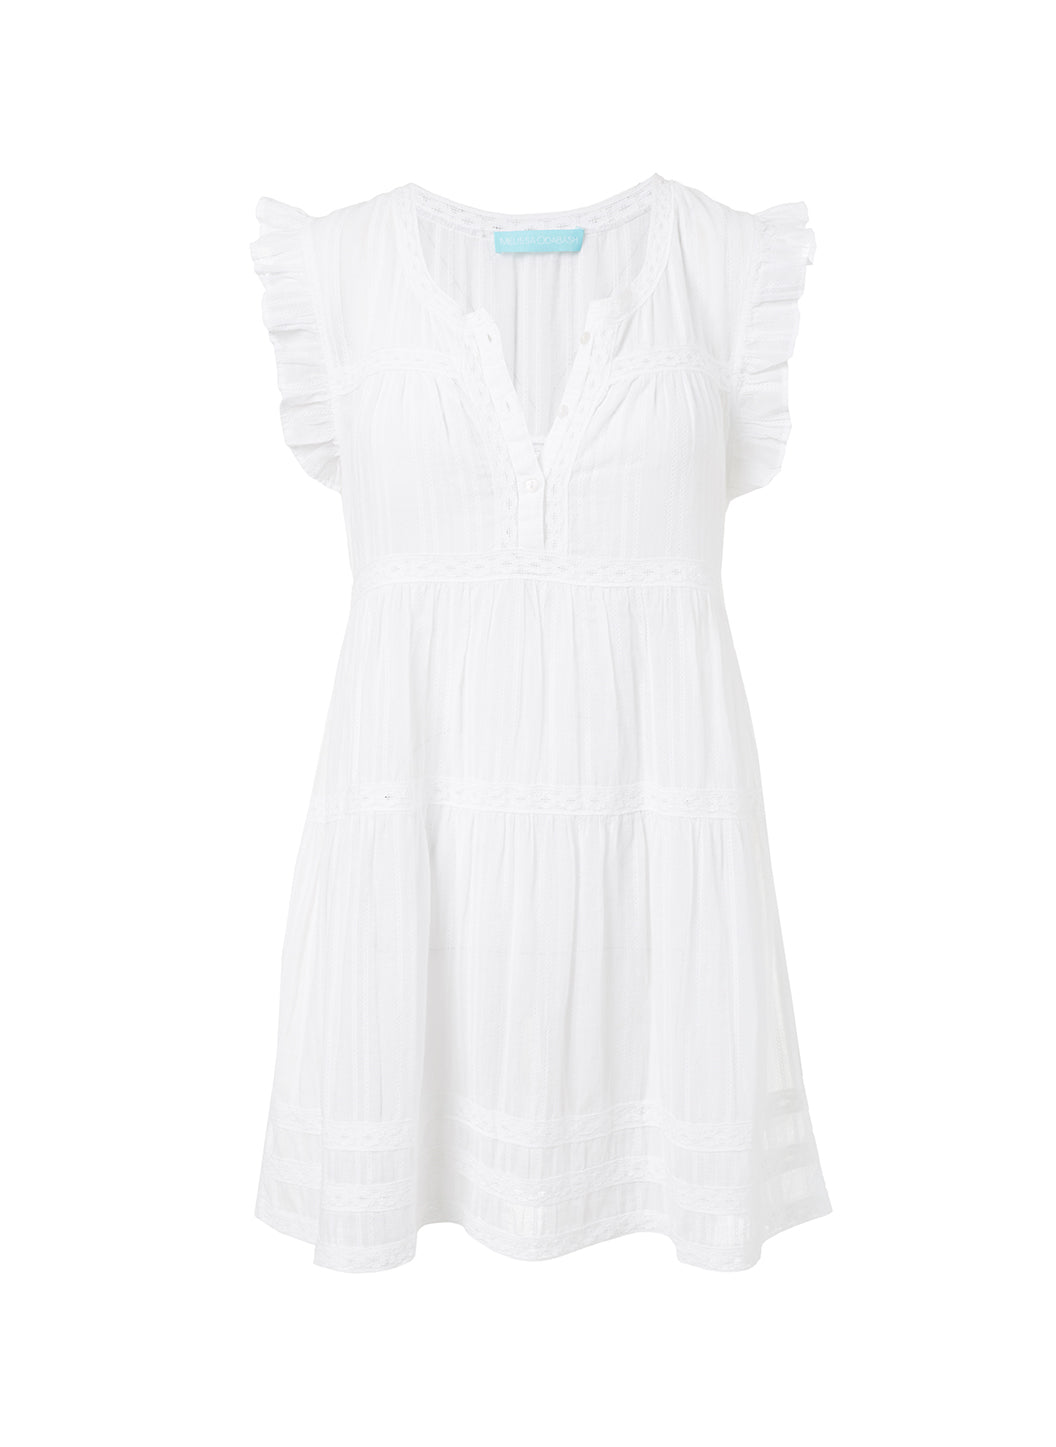 Rebekah White Button-Front Short Dress - Melissa Odabash Beachwear